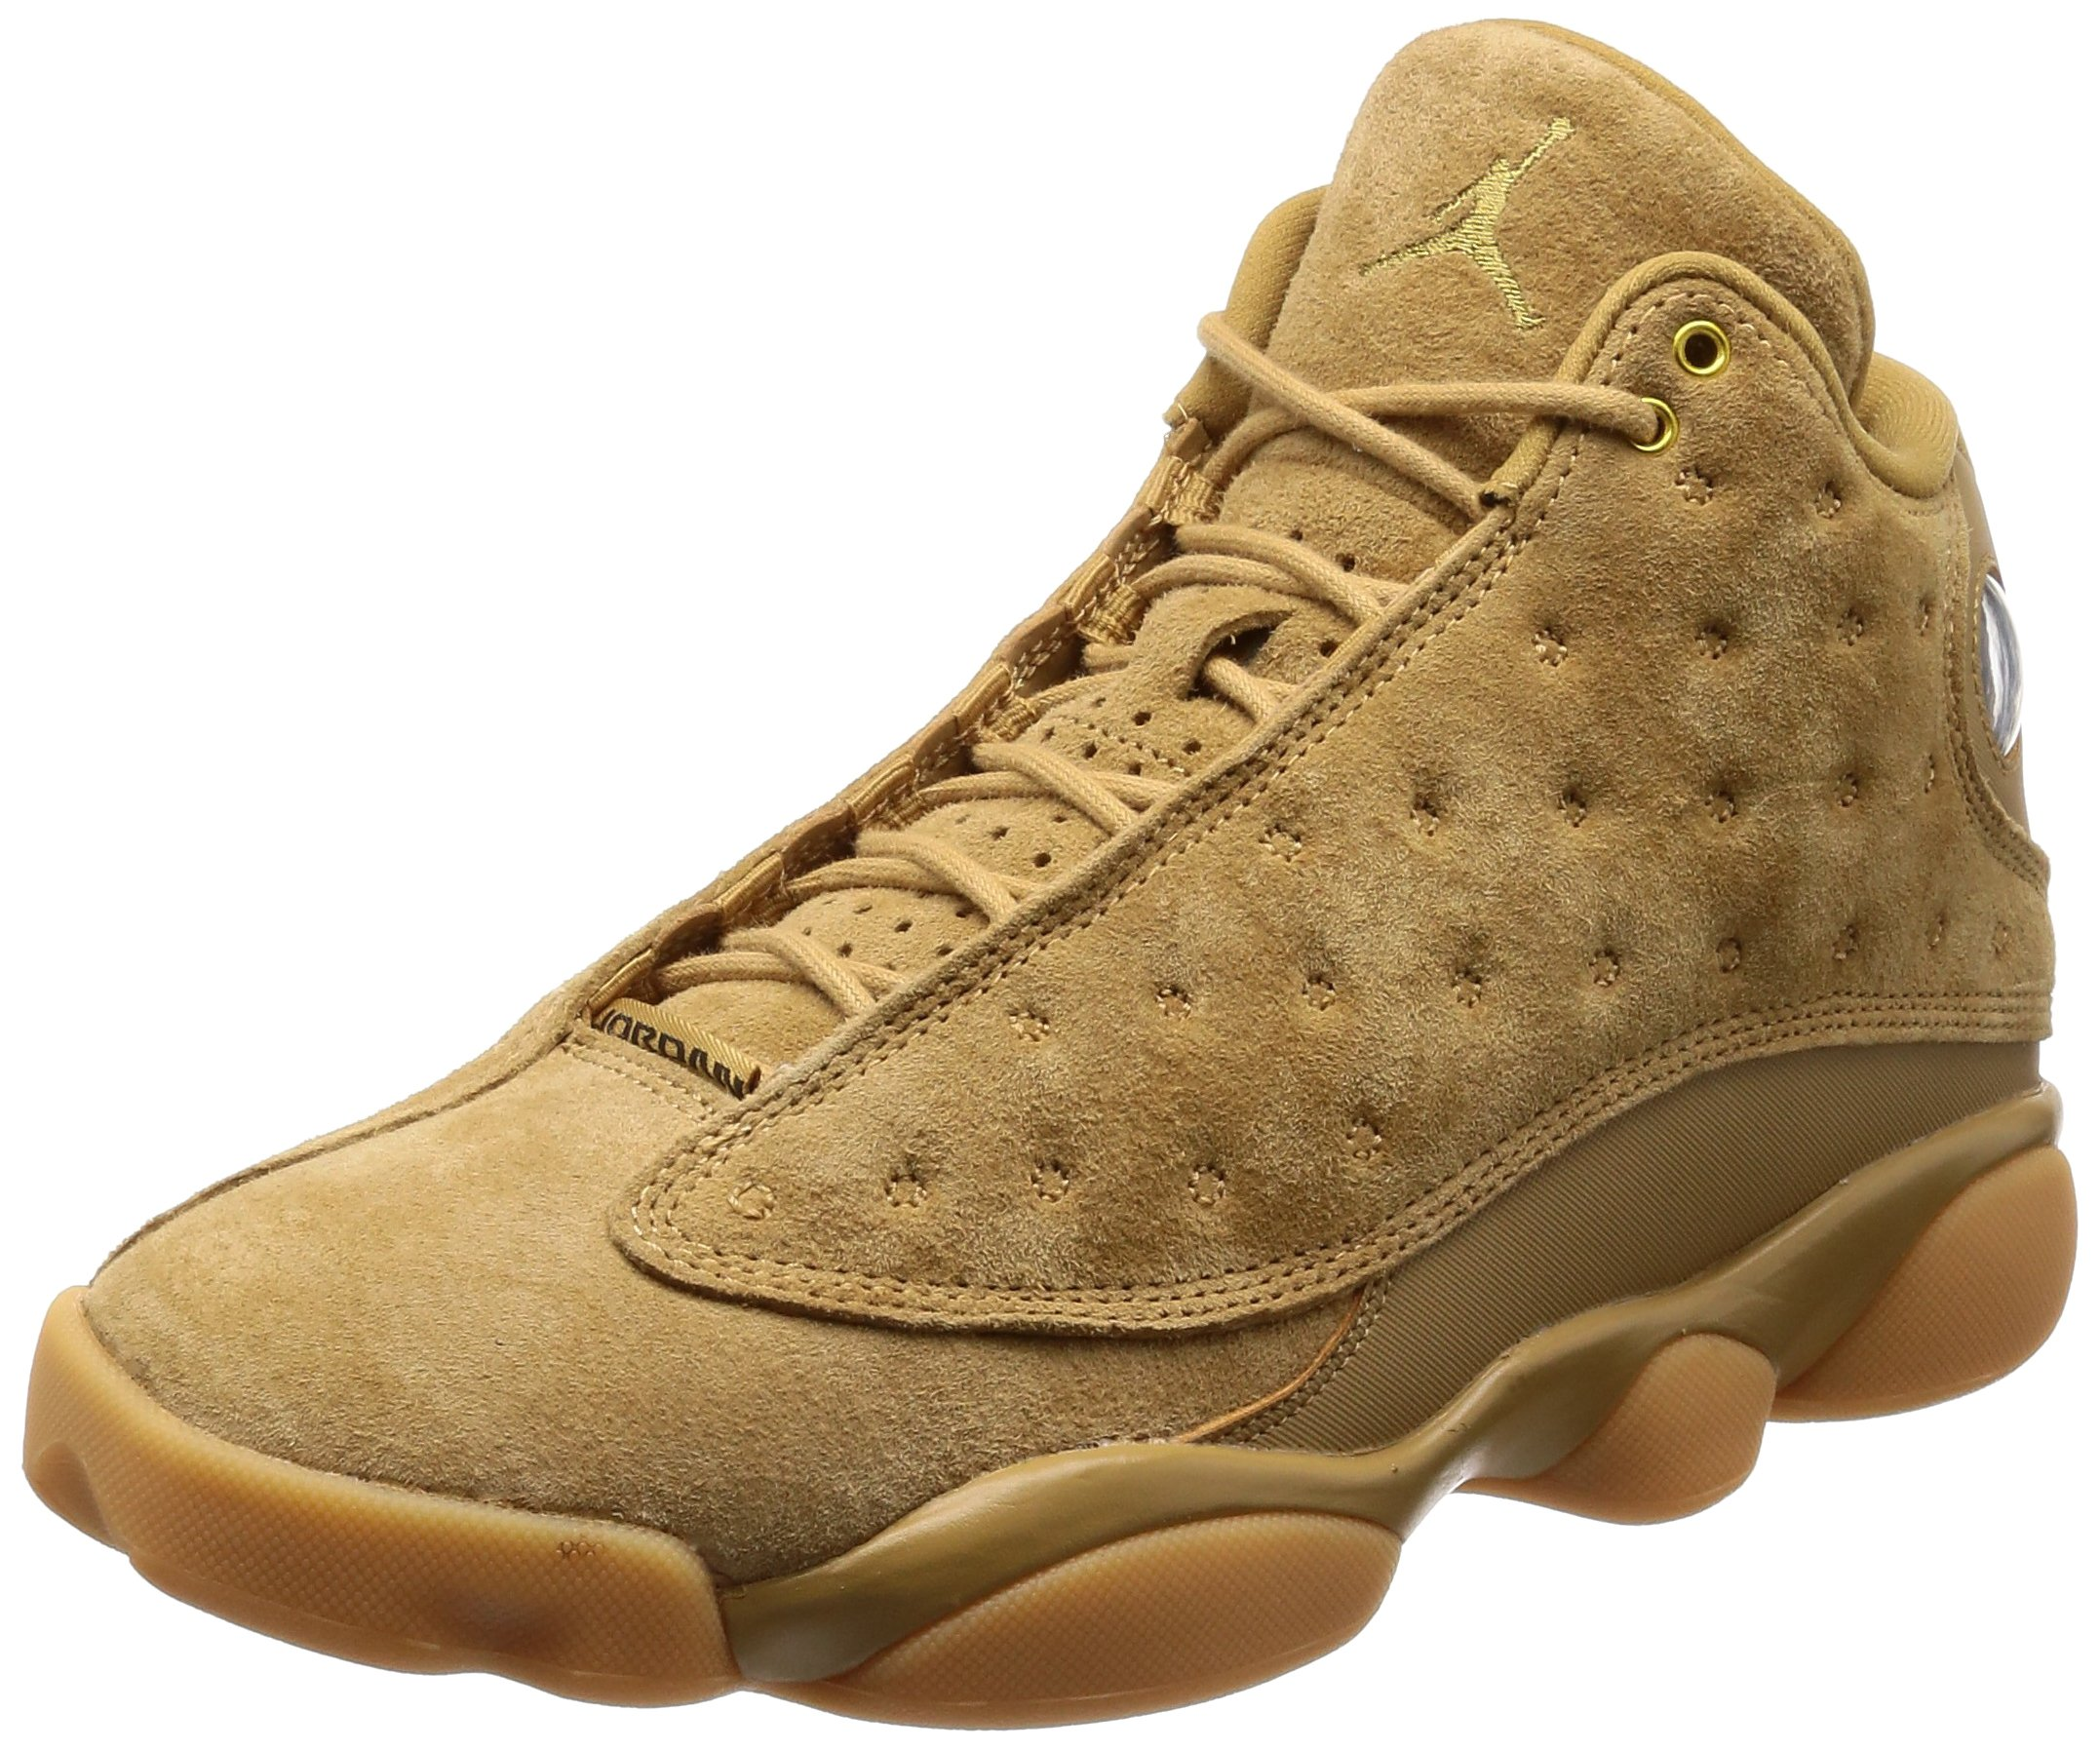 Jordan Air 13 Retro Wheat casual shoes mens elemental gold/baroque brown New 414571-705 - 8 by Jordan